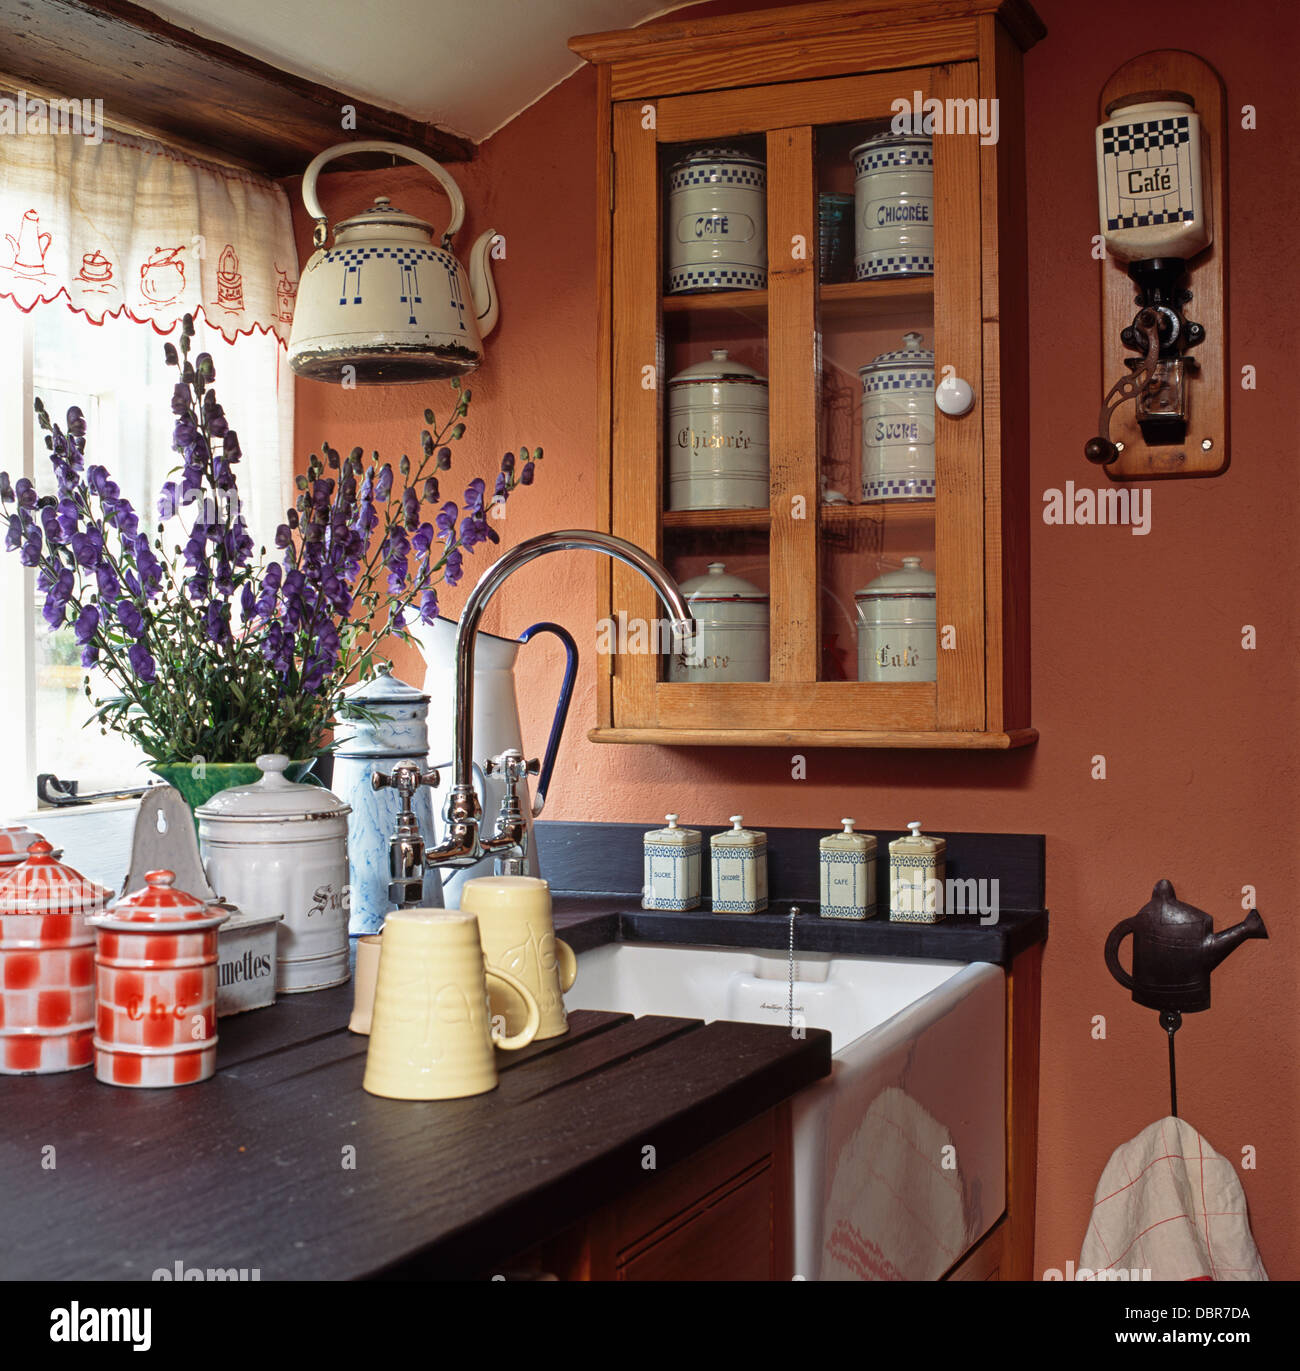 Vintage enamel storage jars and jugs on draining board beside Belfast sink in terracotta painted kitchen with wall - Stock Image